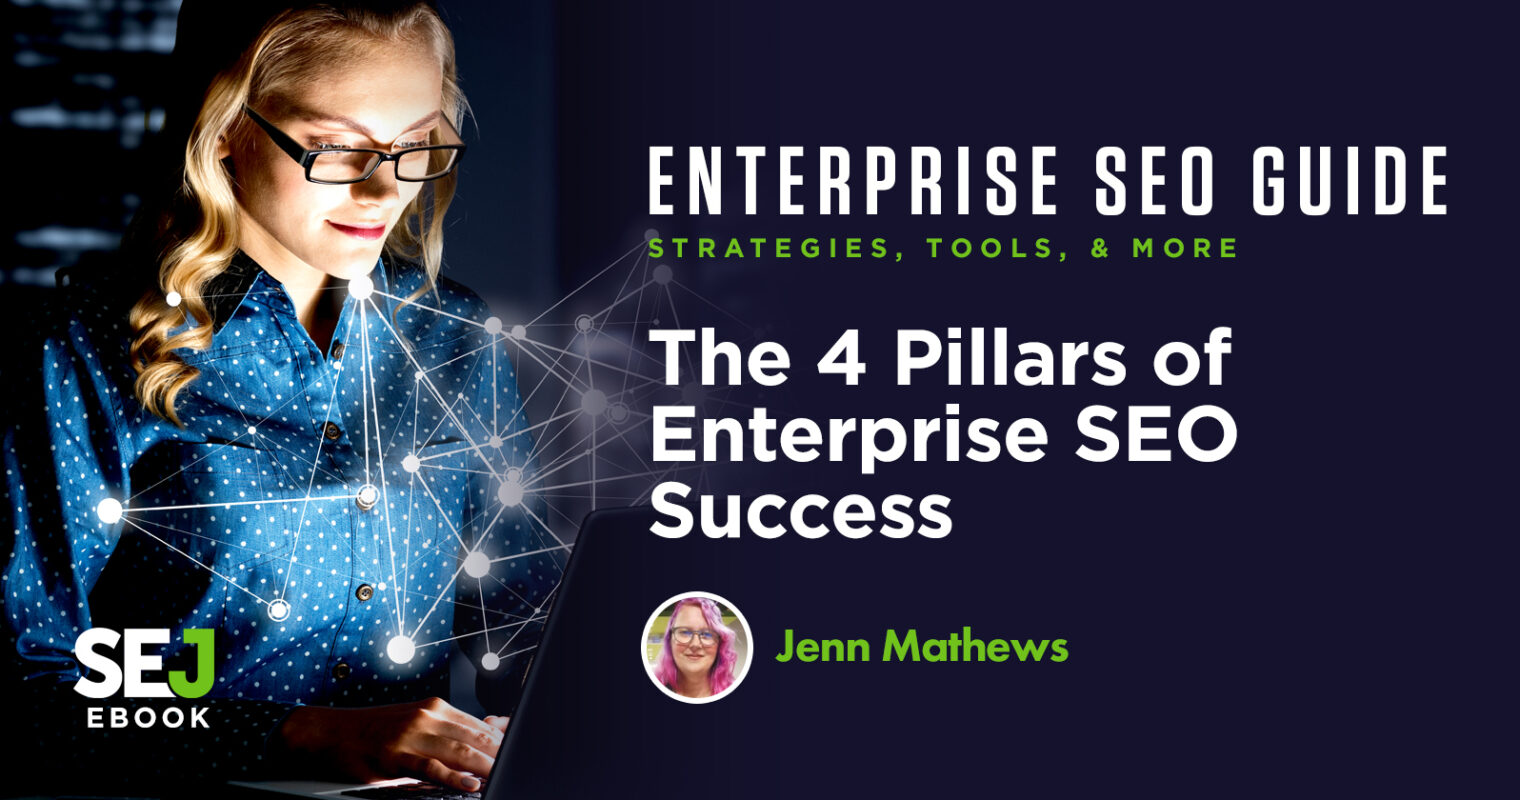 The 4 Pillars of Enterprise SEO Success